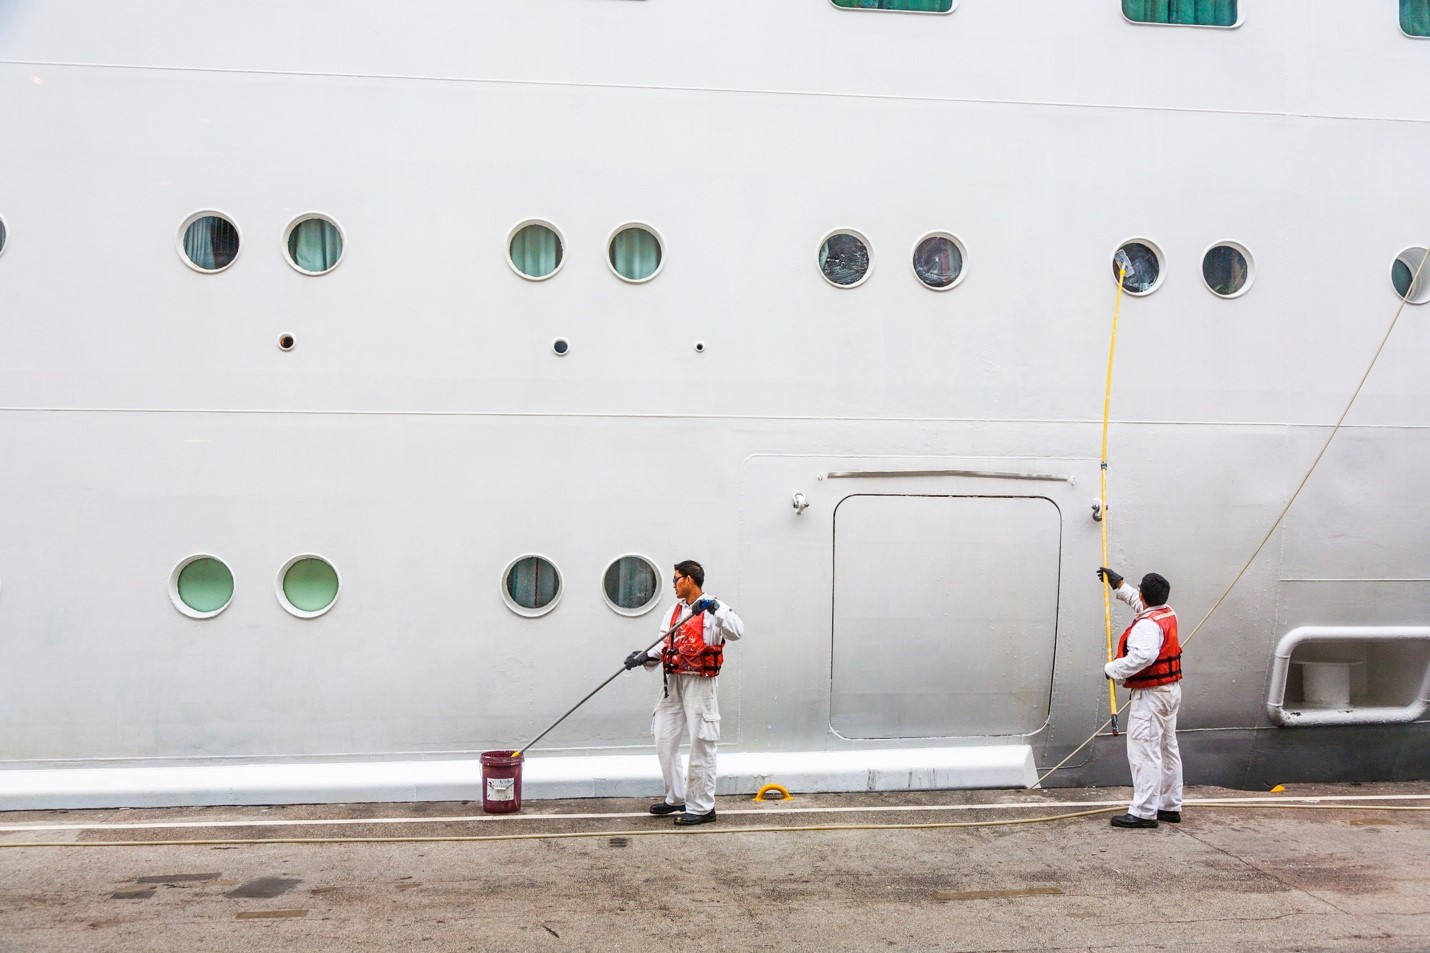 Do All Cruise Workers Qualify for the Jones Act